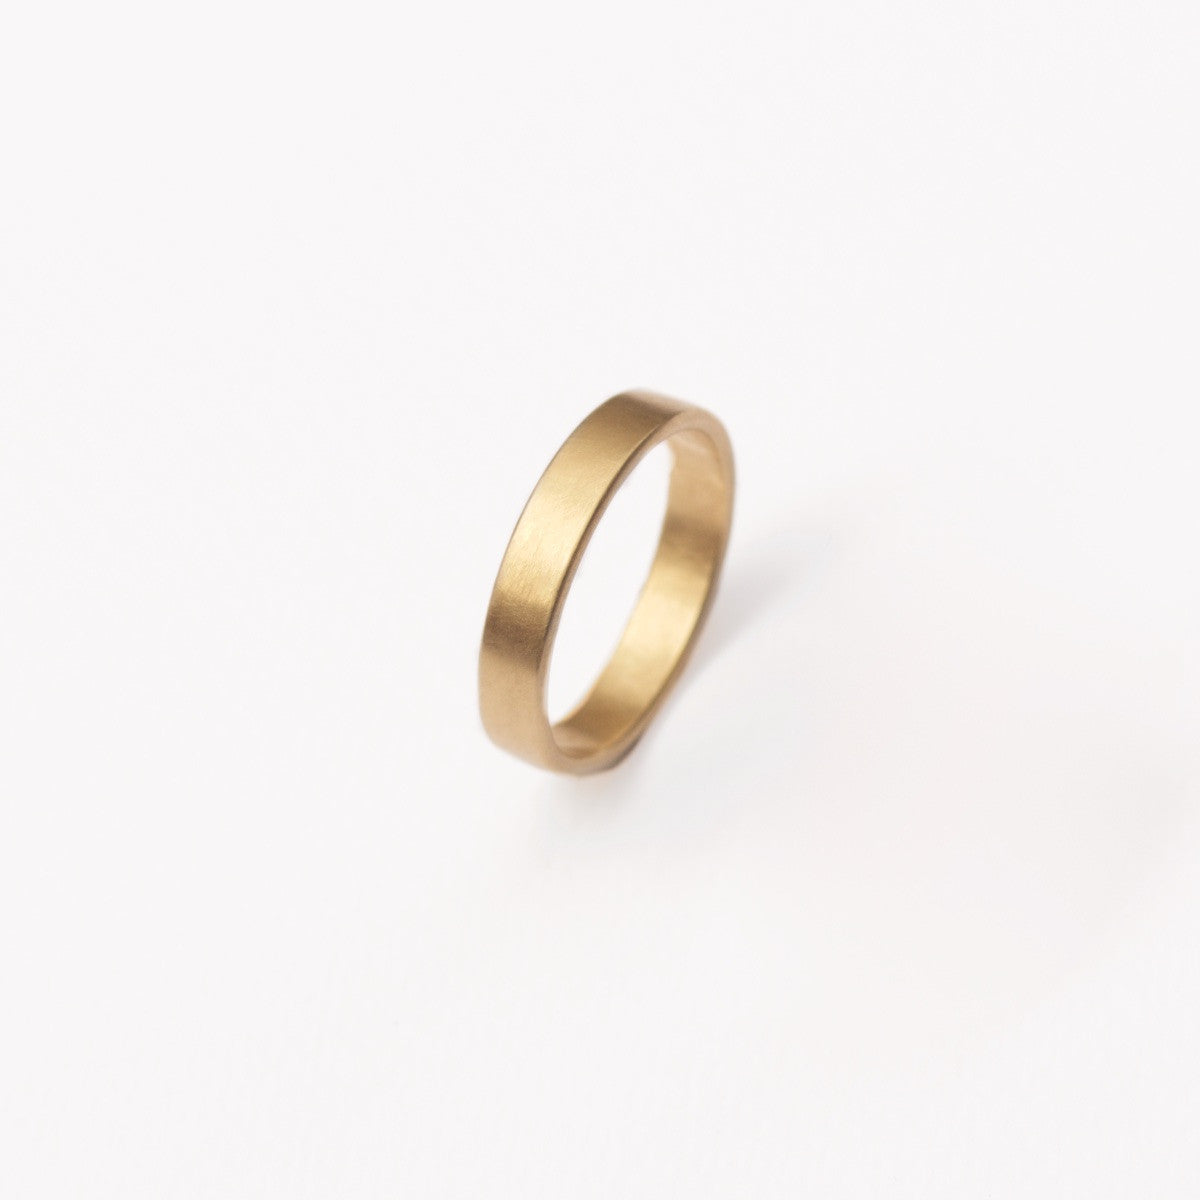 'Obround' Men's Fairtrade Gold Wedding Ring